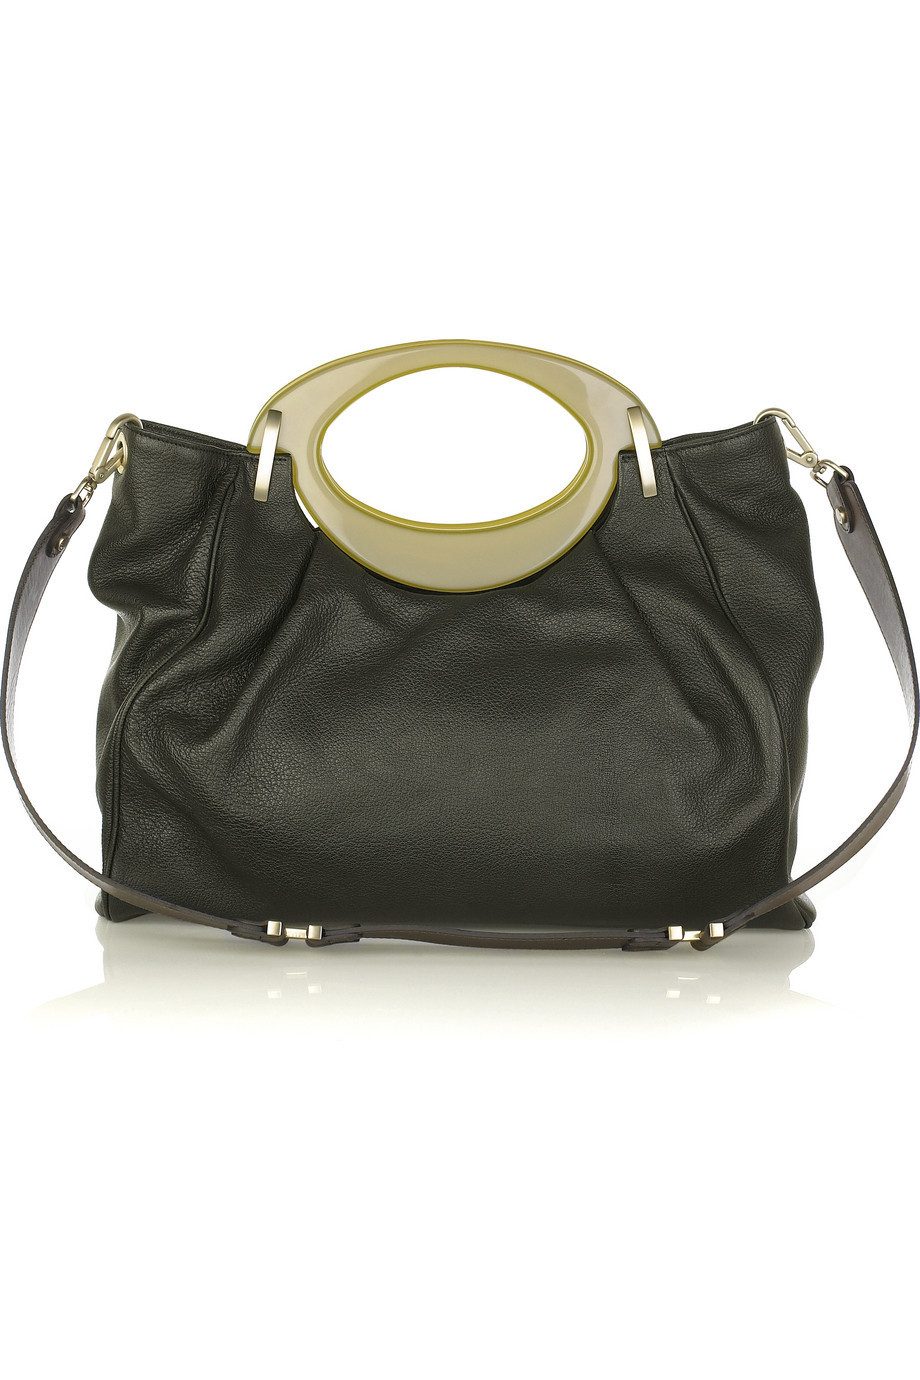 Marni Textured leather east west bag | NET-A-PORTER.COM from net-a-porter.com